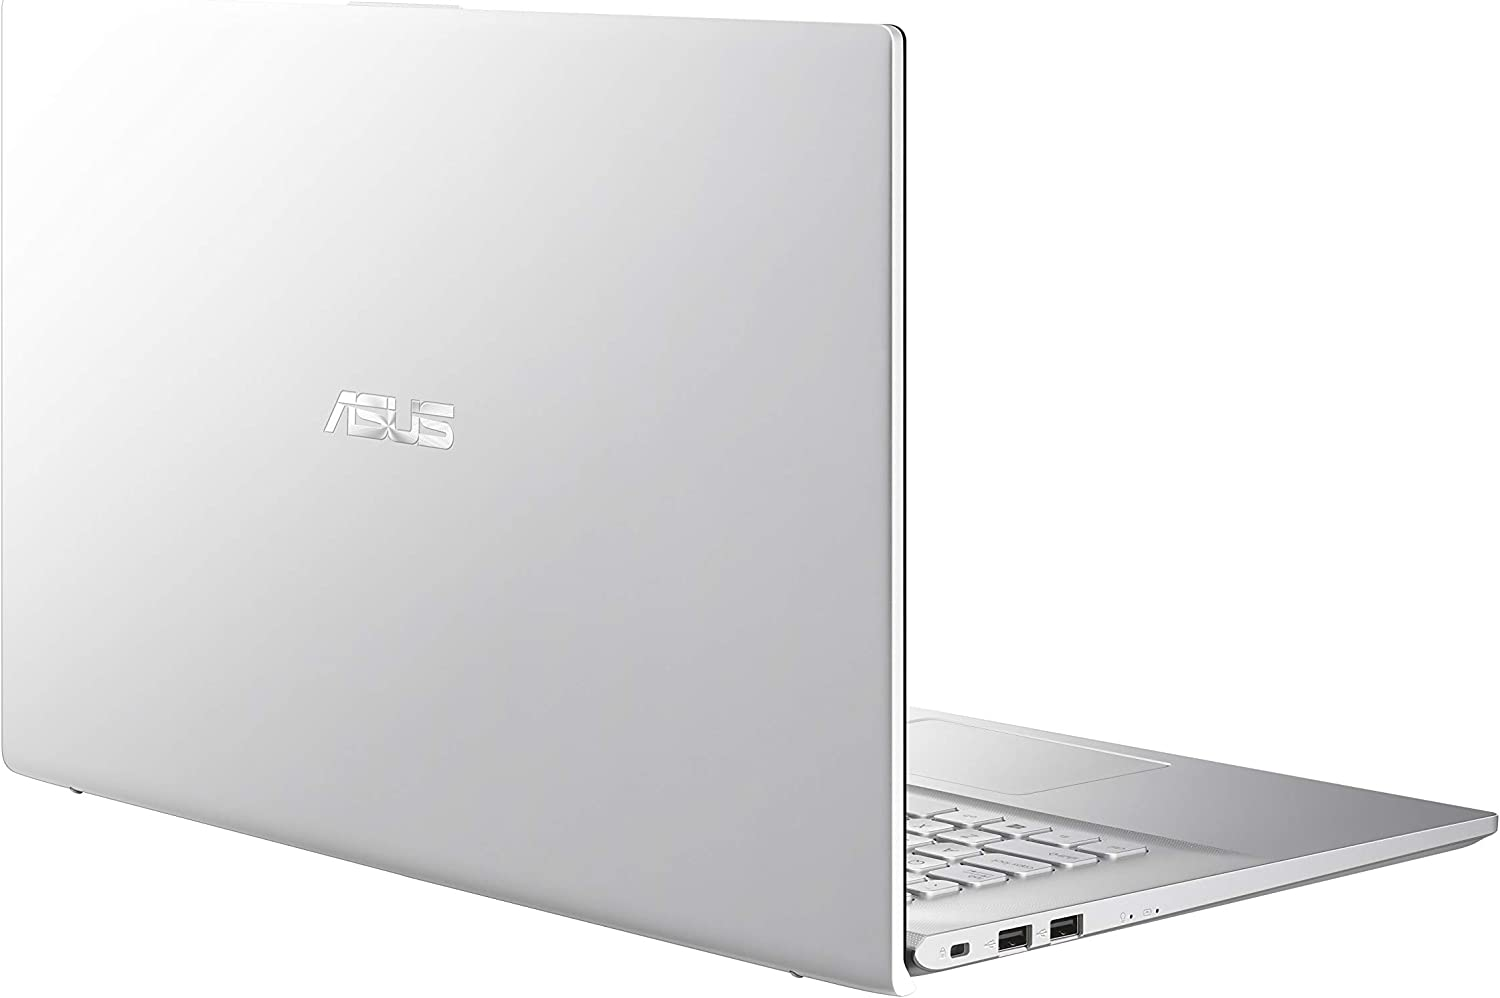 "ASUS VivoBook 17 S712 Thin and Light Laptop, 17.3"" FHD Display, AMD Ryzen 3 3250U CPU, 8GB RAM, 128GB SSD + 1TB HDD, Windows 10 Home, Transparent Silver, S712DA-DB36"